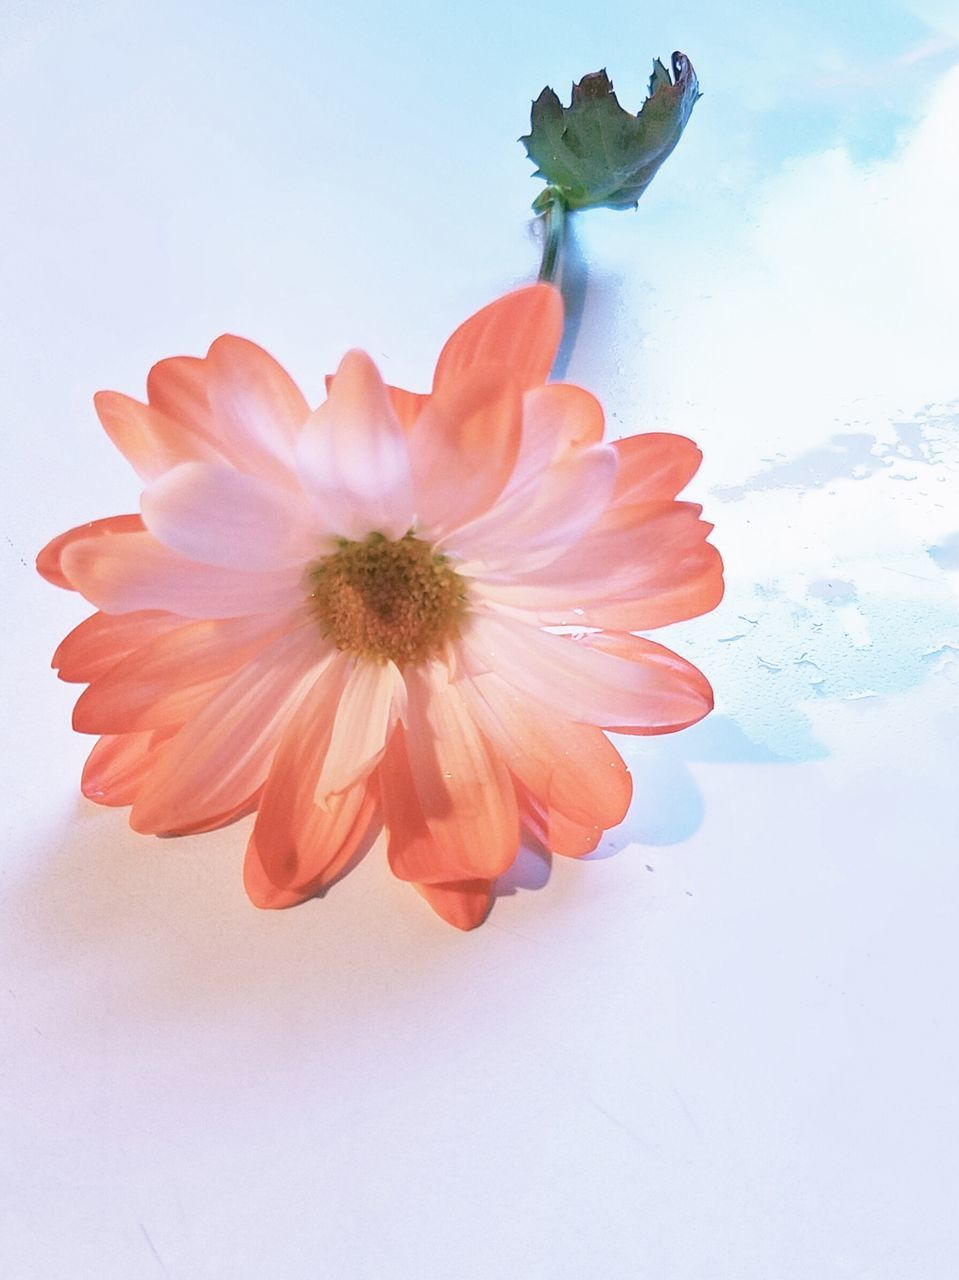 flower, beauty in nature, nature, petal, fragility, no people, freshness, flower head, growth, close-up, sky, outdoors, day, blooming, white background